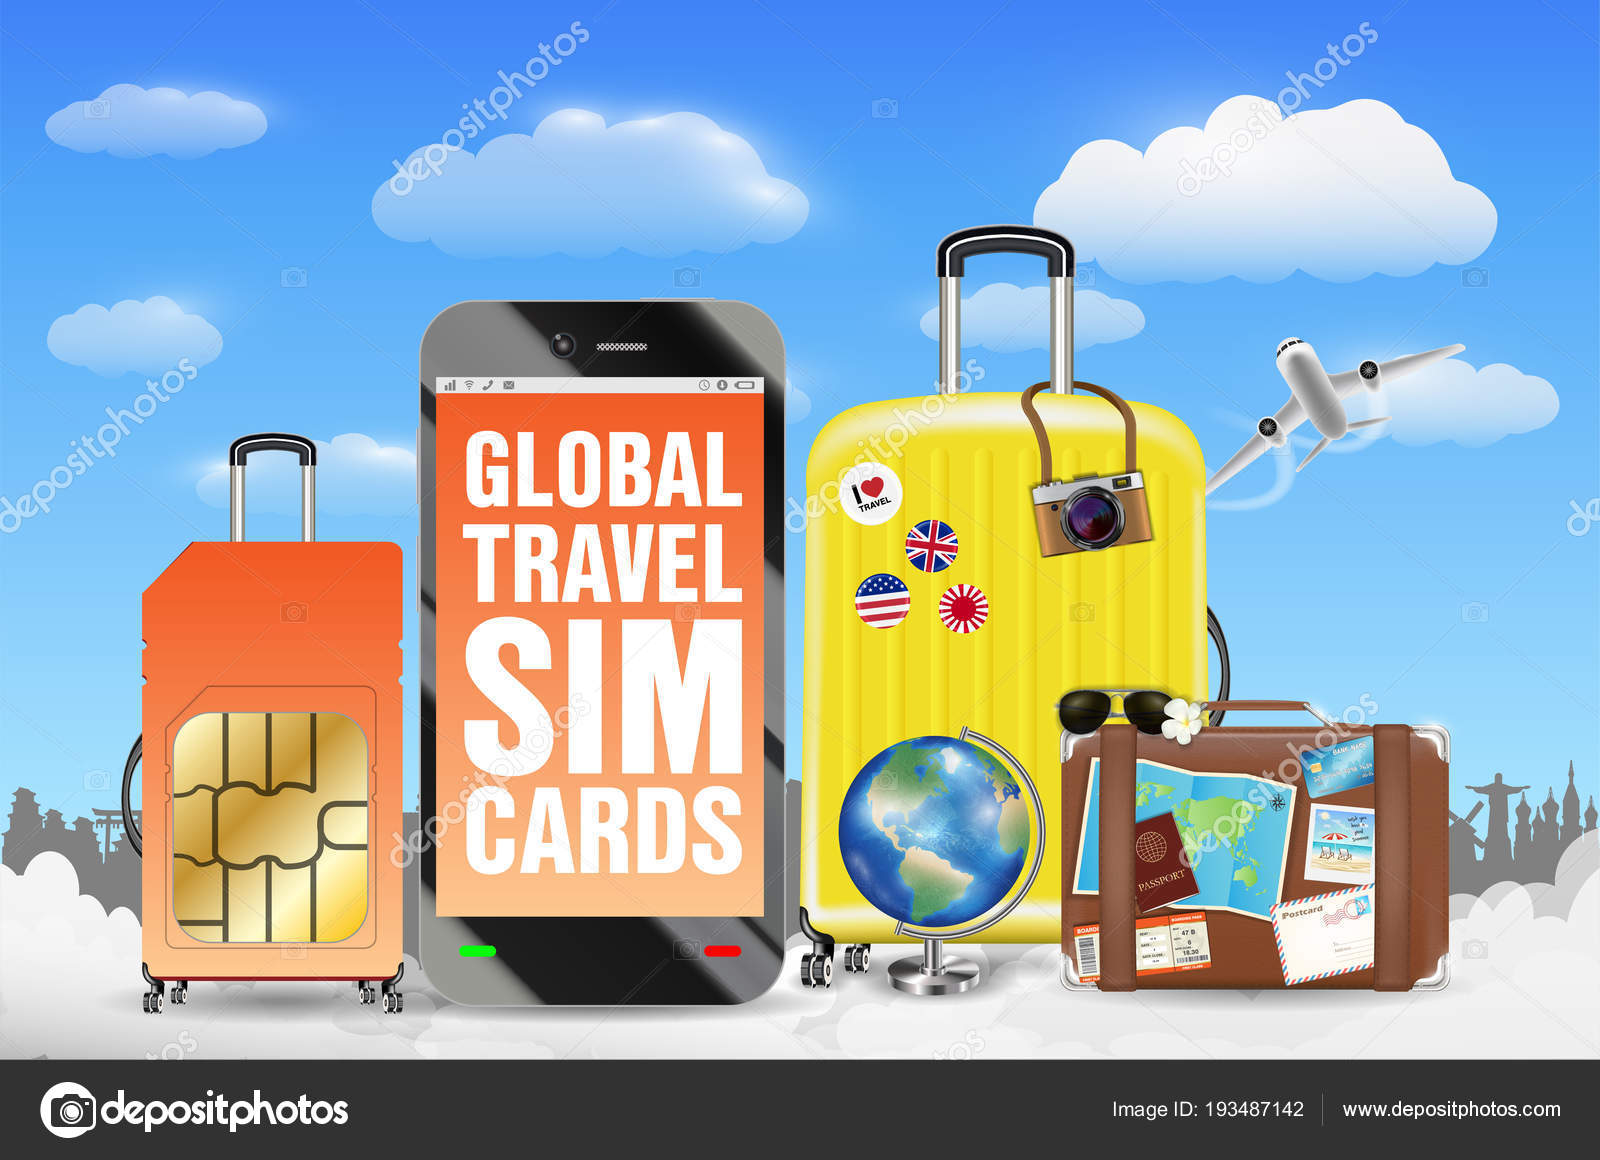 smartphone global travel sim card luggage bag stock vector - Global Travel Card